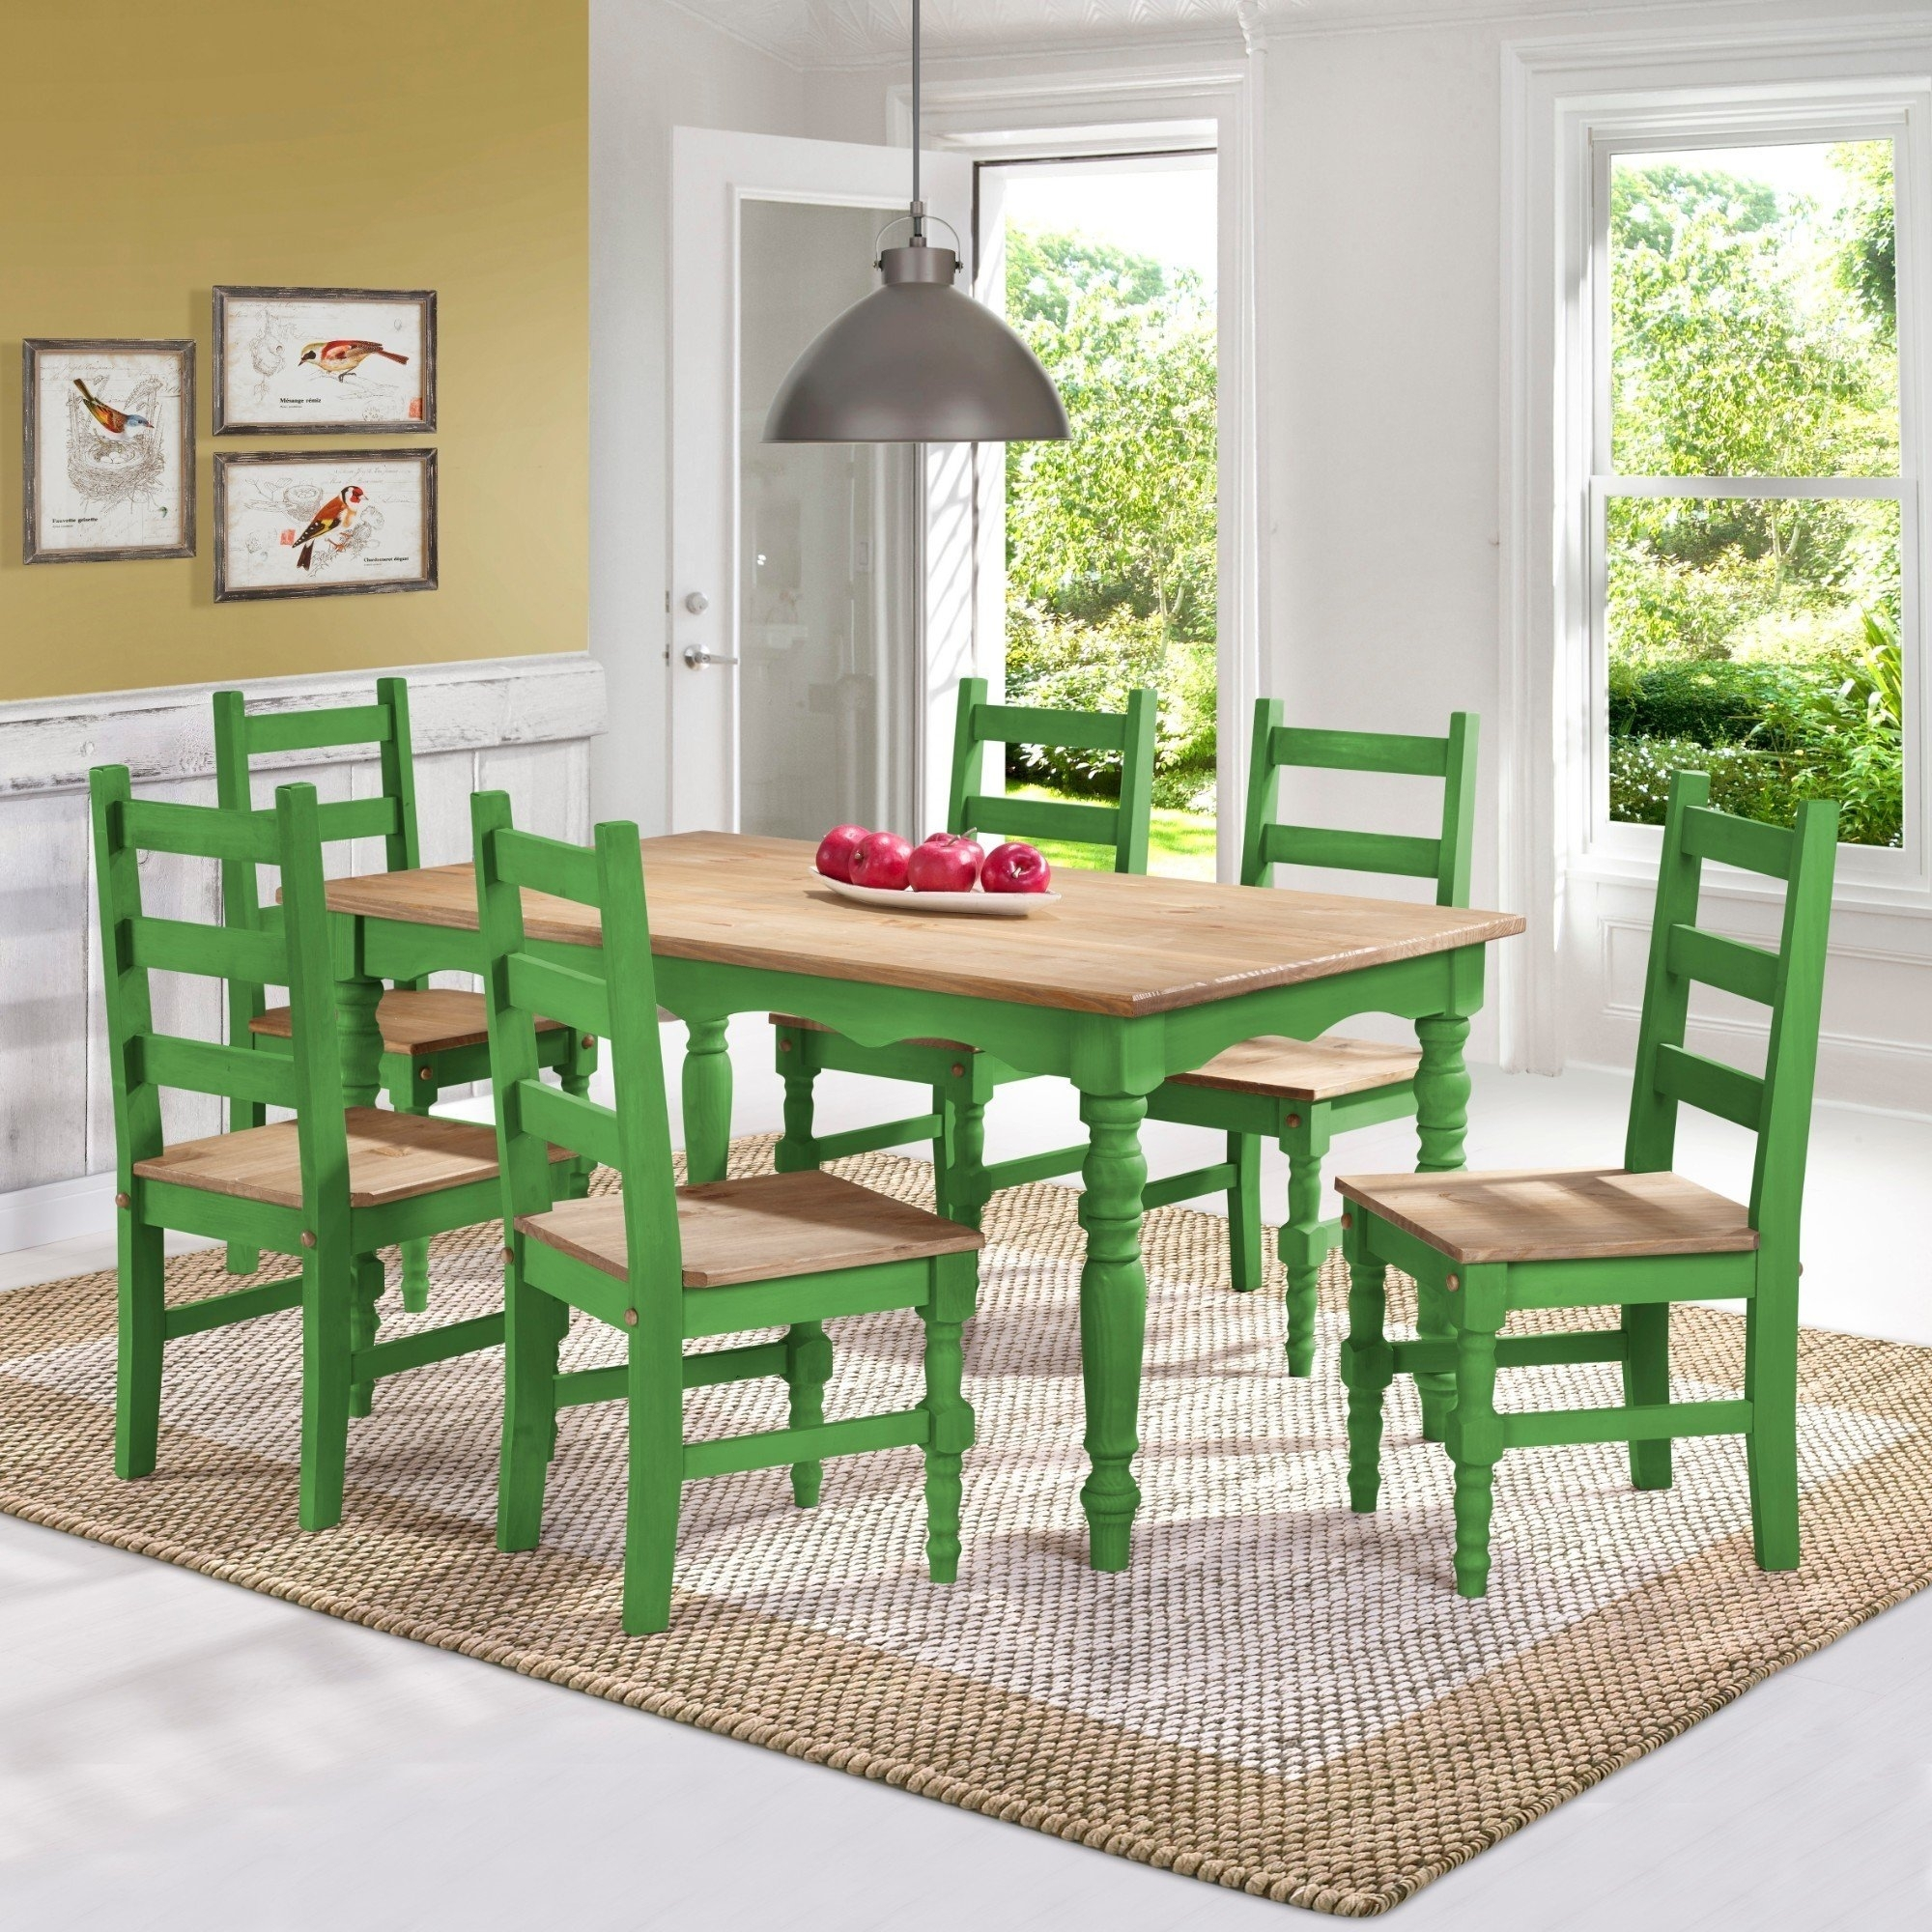 Shop Manhattan Comfort Jay 7 Piece Solid Wood Dining Set With 6 With Regard To Most Current Helms 6 Piece Rectangle Dining Sets With Side Chairs (View 11 of 20)